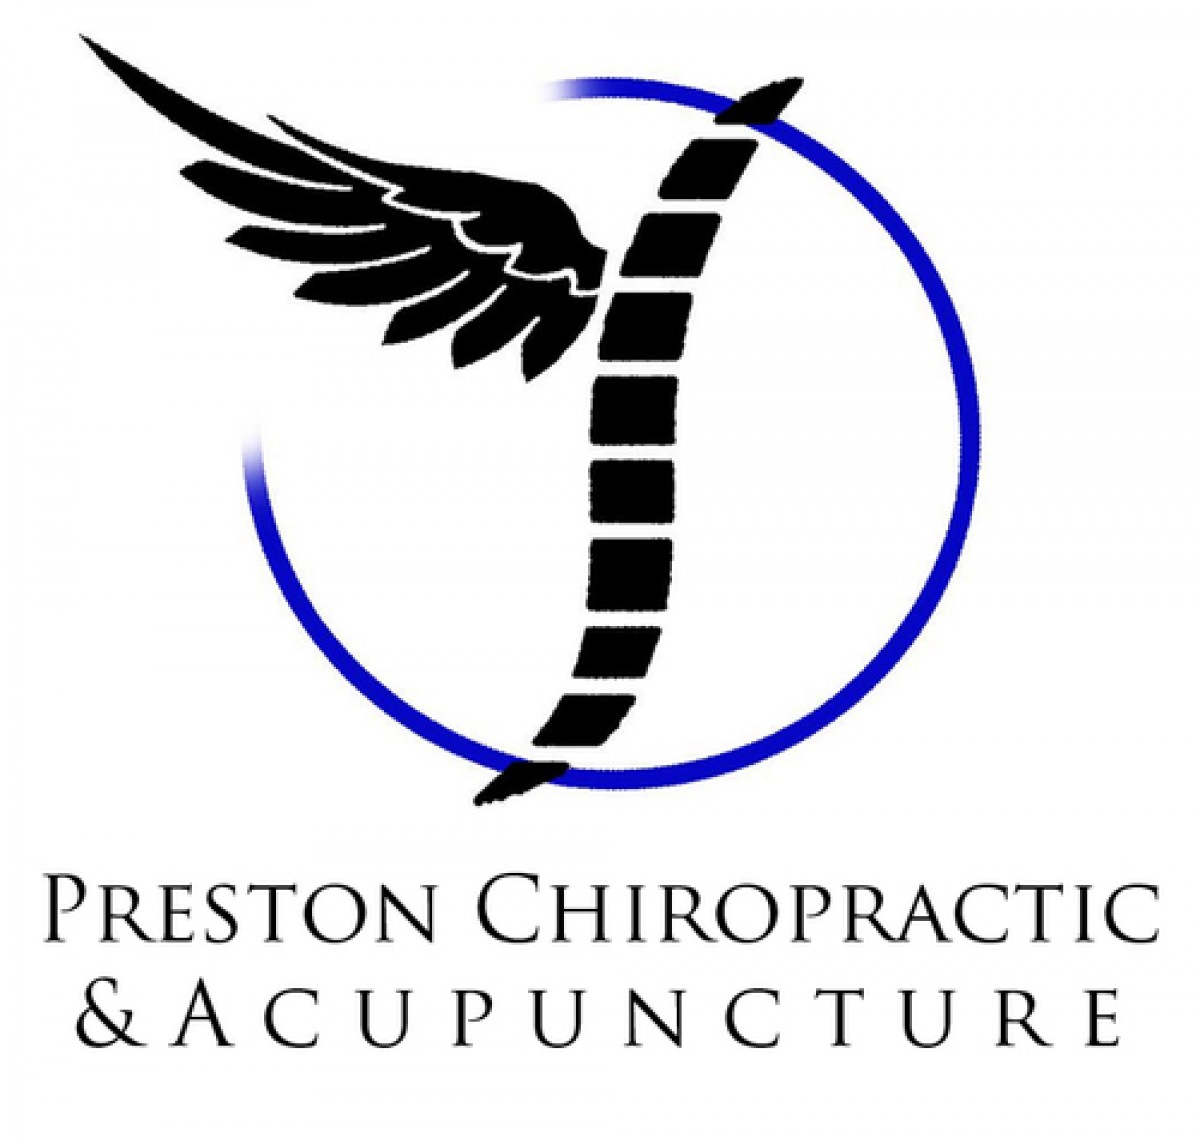 Preston Family Chiropractic and Acupuncture